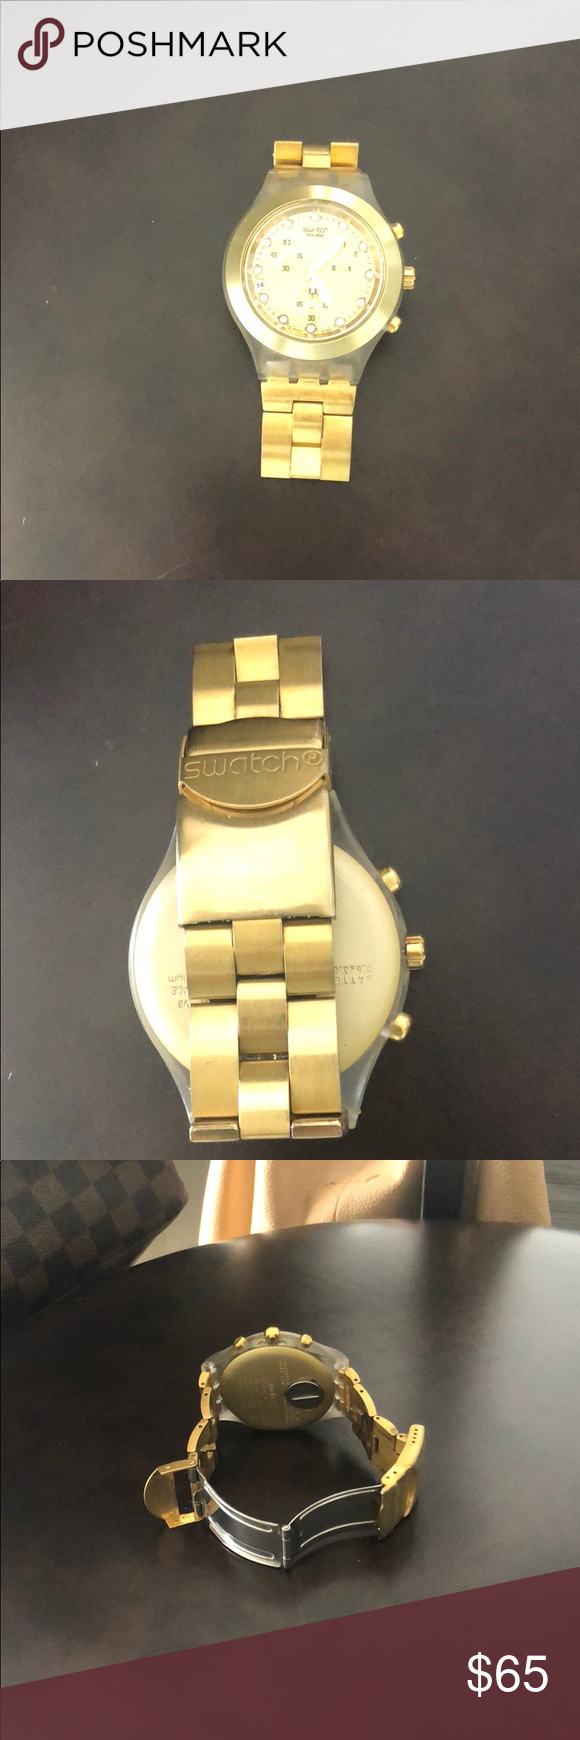 Swatch Irony Diaphane Gold Watch Gold Watch Gold Accessories Watches